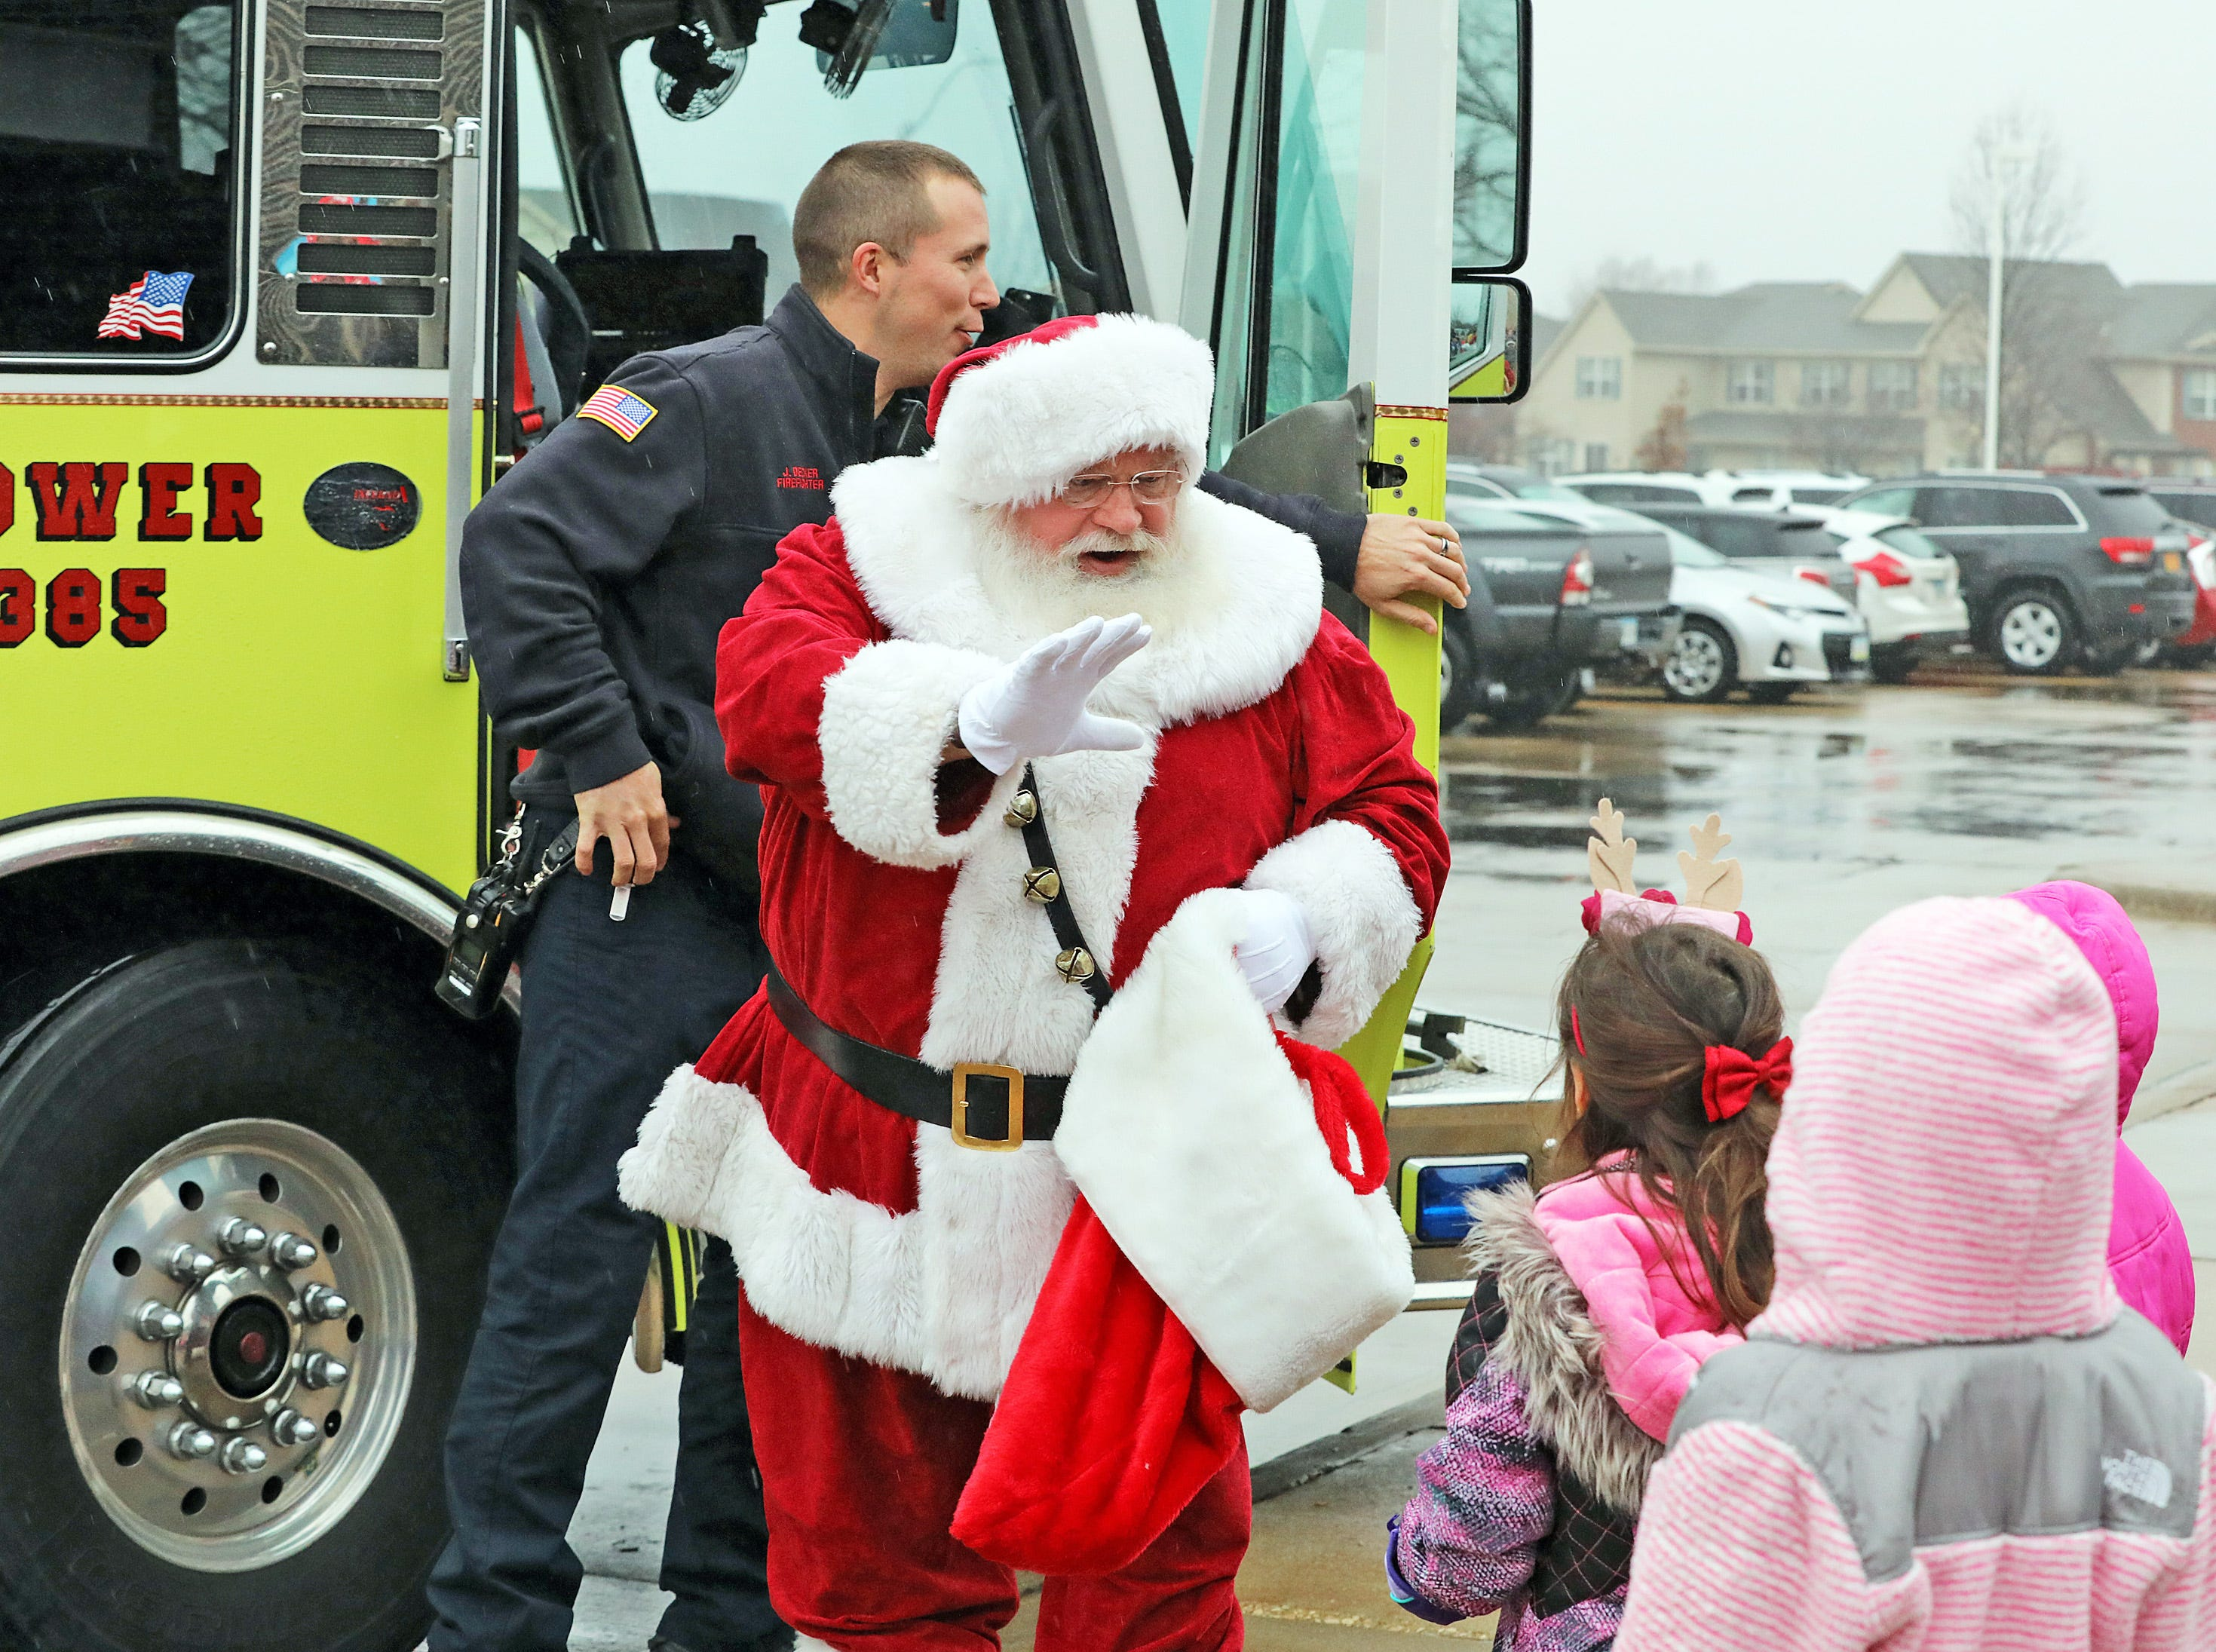 Santa greets the children as he arrives by fire truck during Holidays in Johnston on Saturday, Dec. 1, 2018 at the Johnston Public Library featuring a gingerbread house contest, cookie decorating, holiday music performed by the Johnston Middle School Ninth Grade Chamber Choir, story time and Santa.